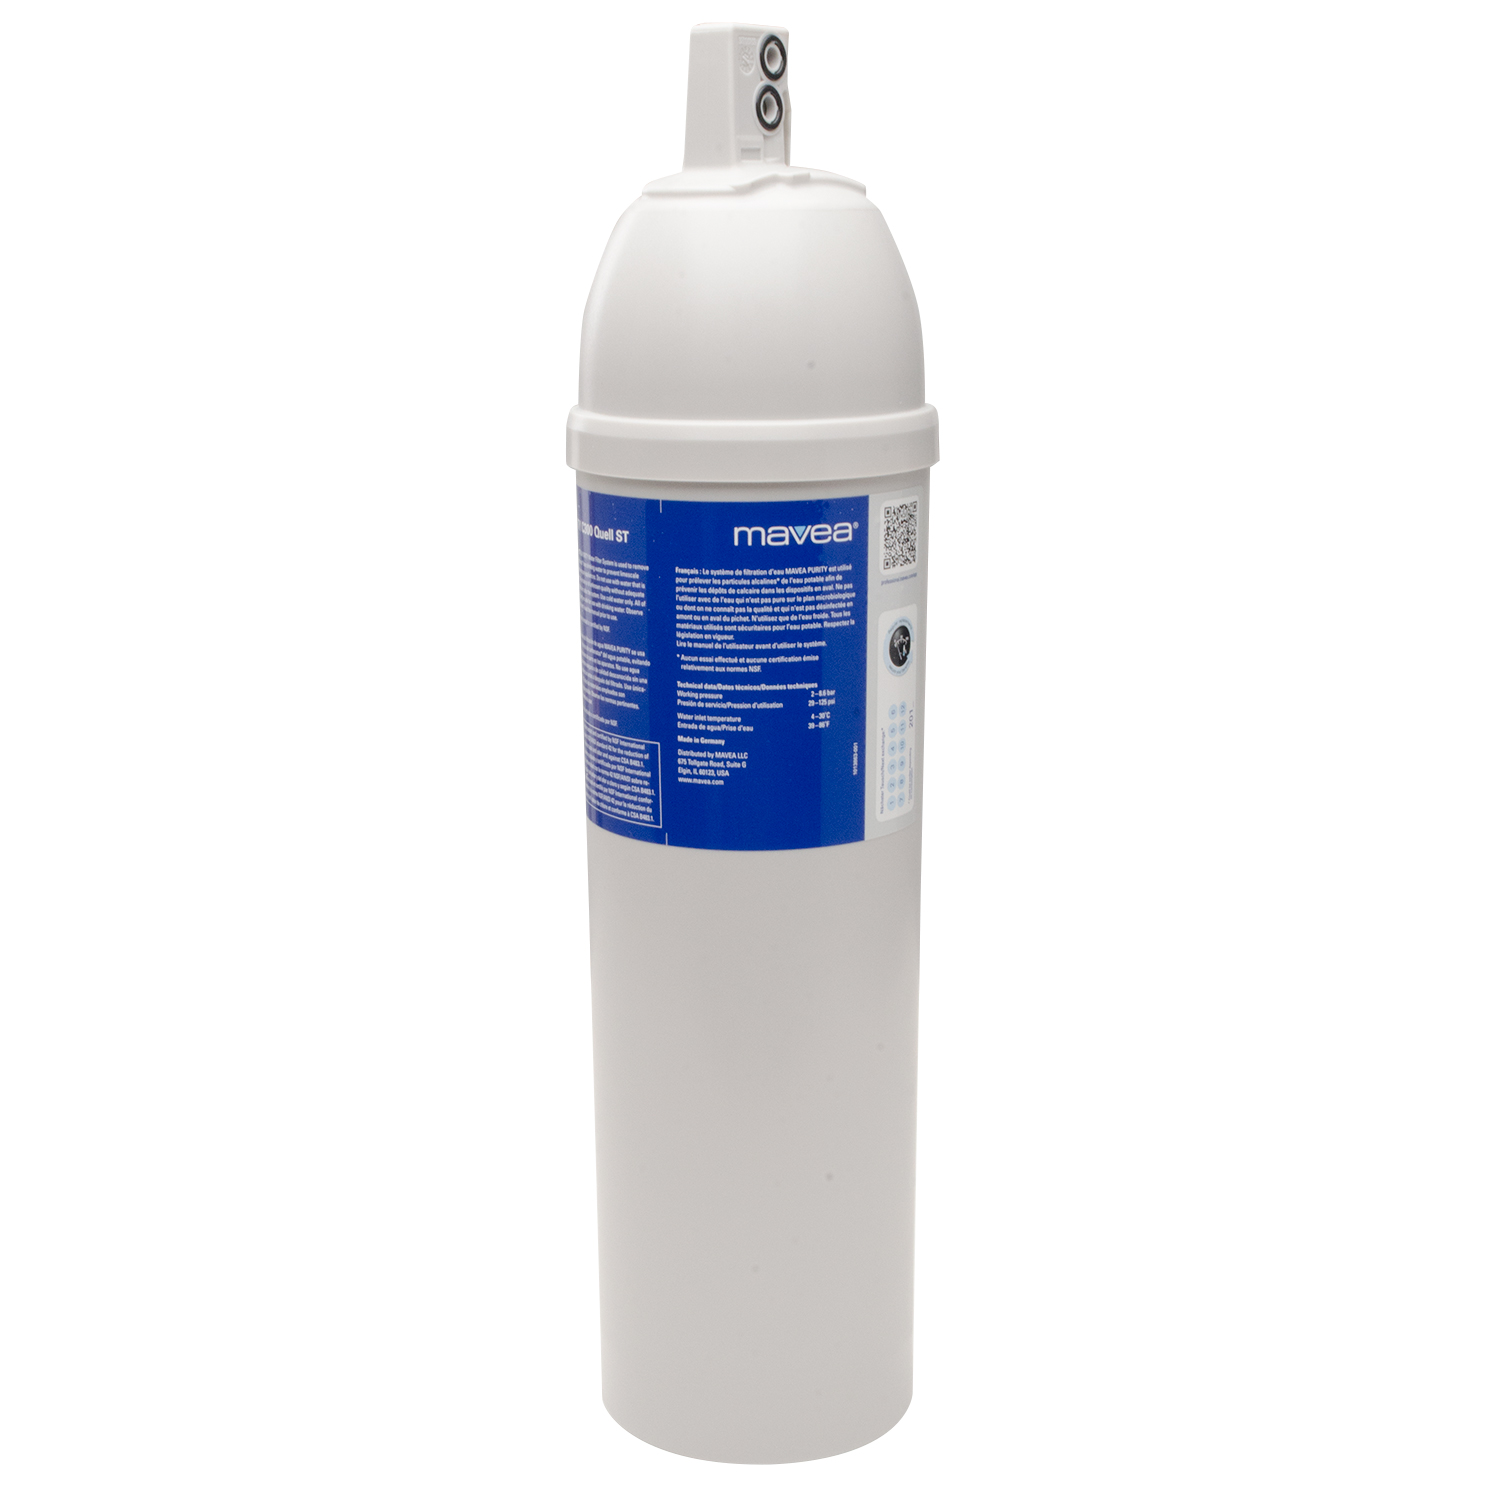 BUNN 45961.1001 water filtration system, cartridge